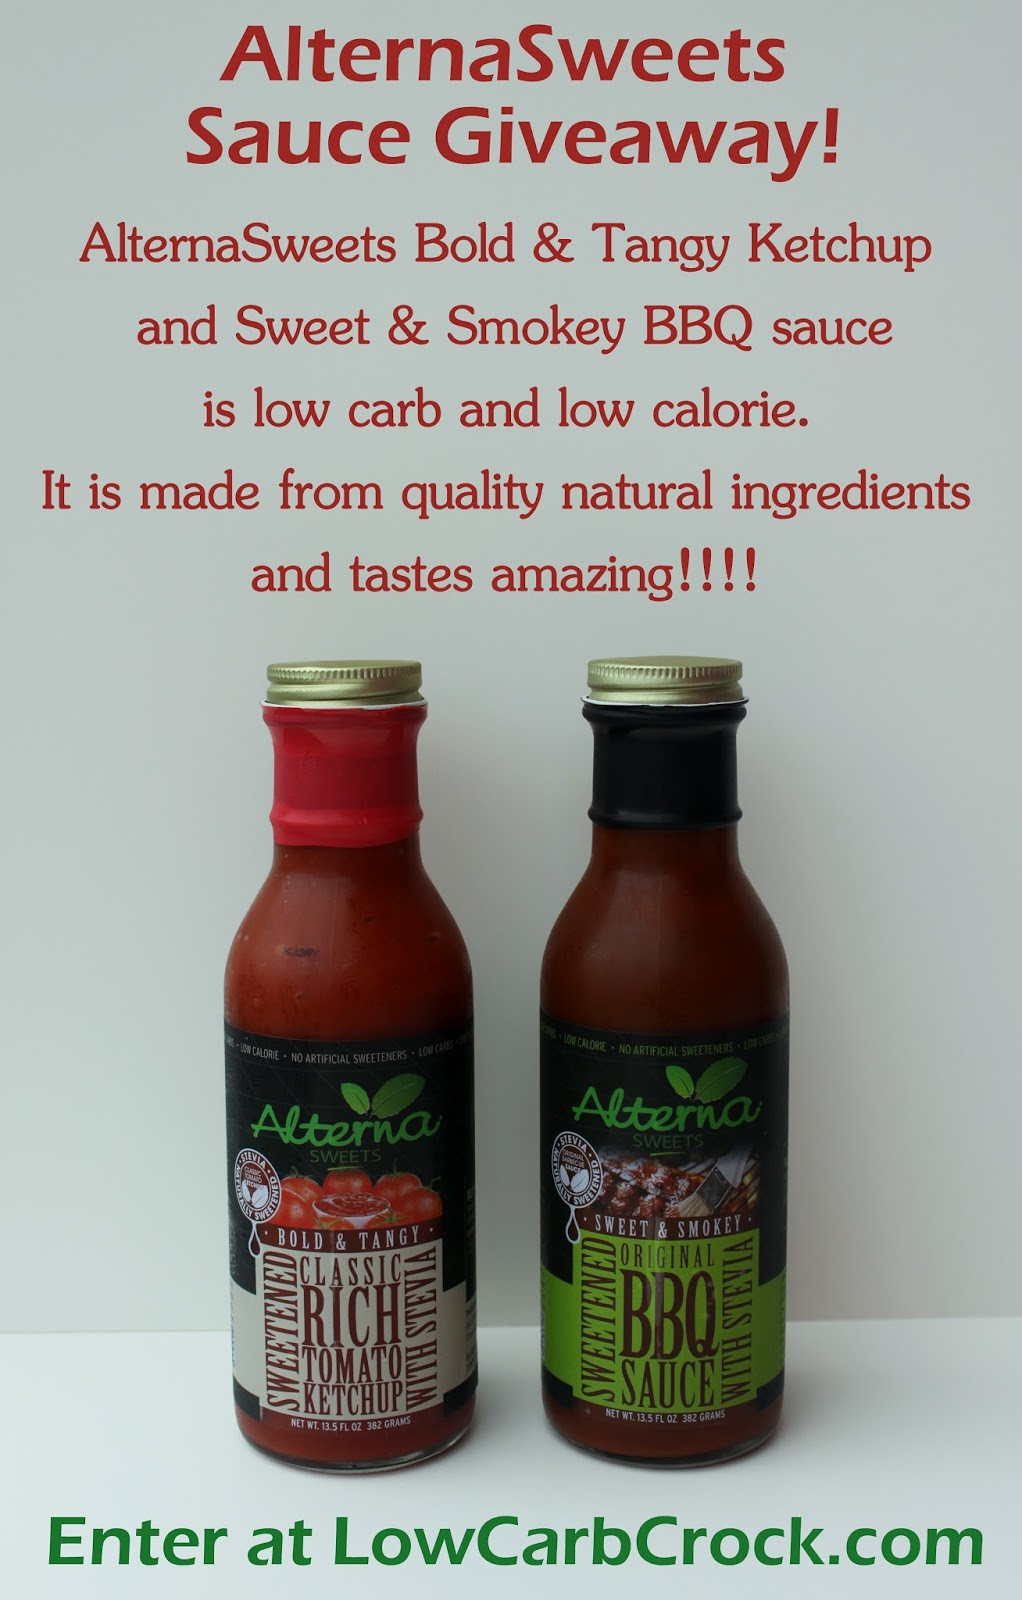 Carbs In Bbq Sauce  Enter My AlternaSweets Giveaway Low Carb Ketchup and